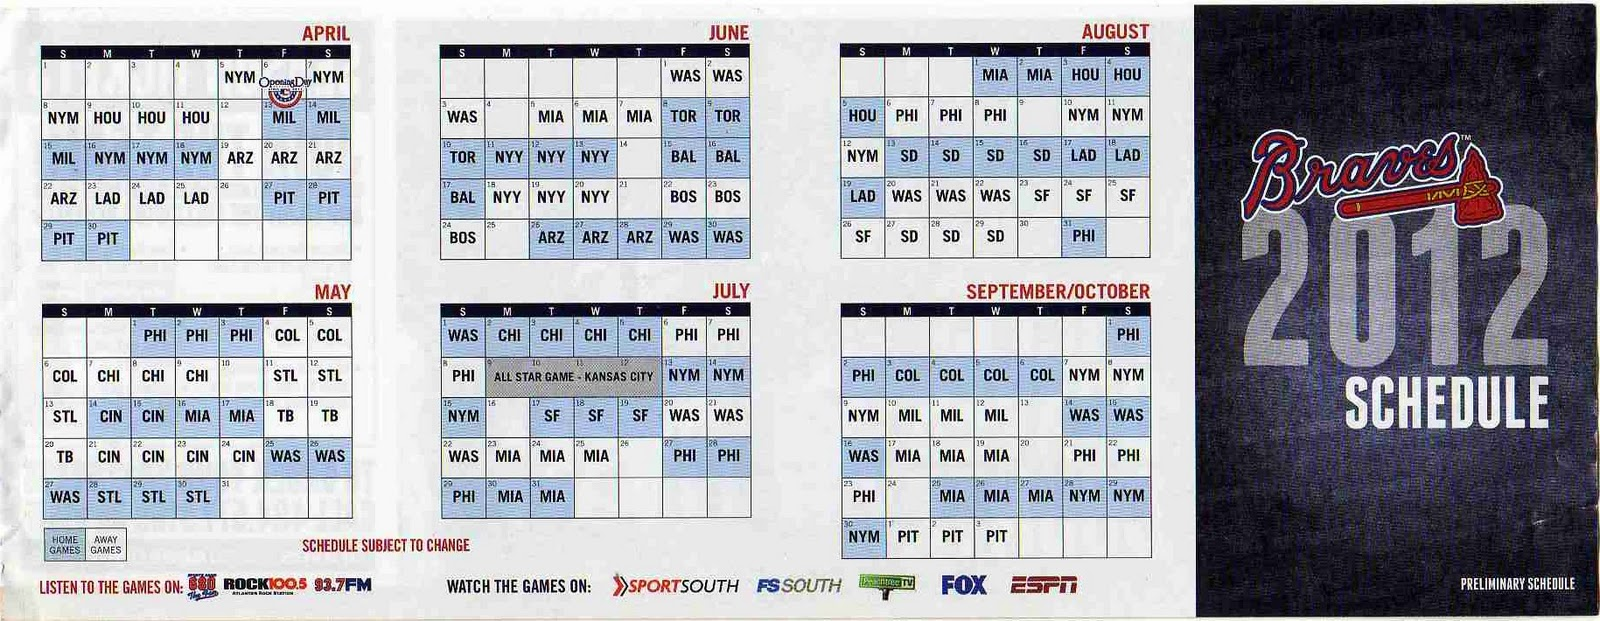 Pittsburgh Steelers Schedule 2011 2012